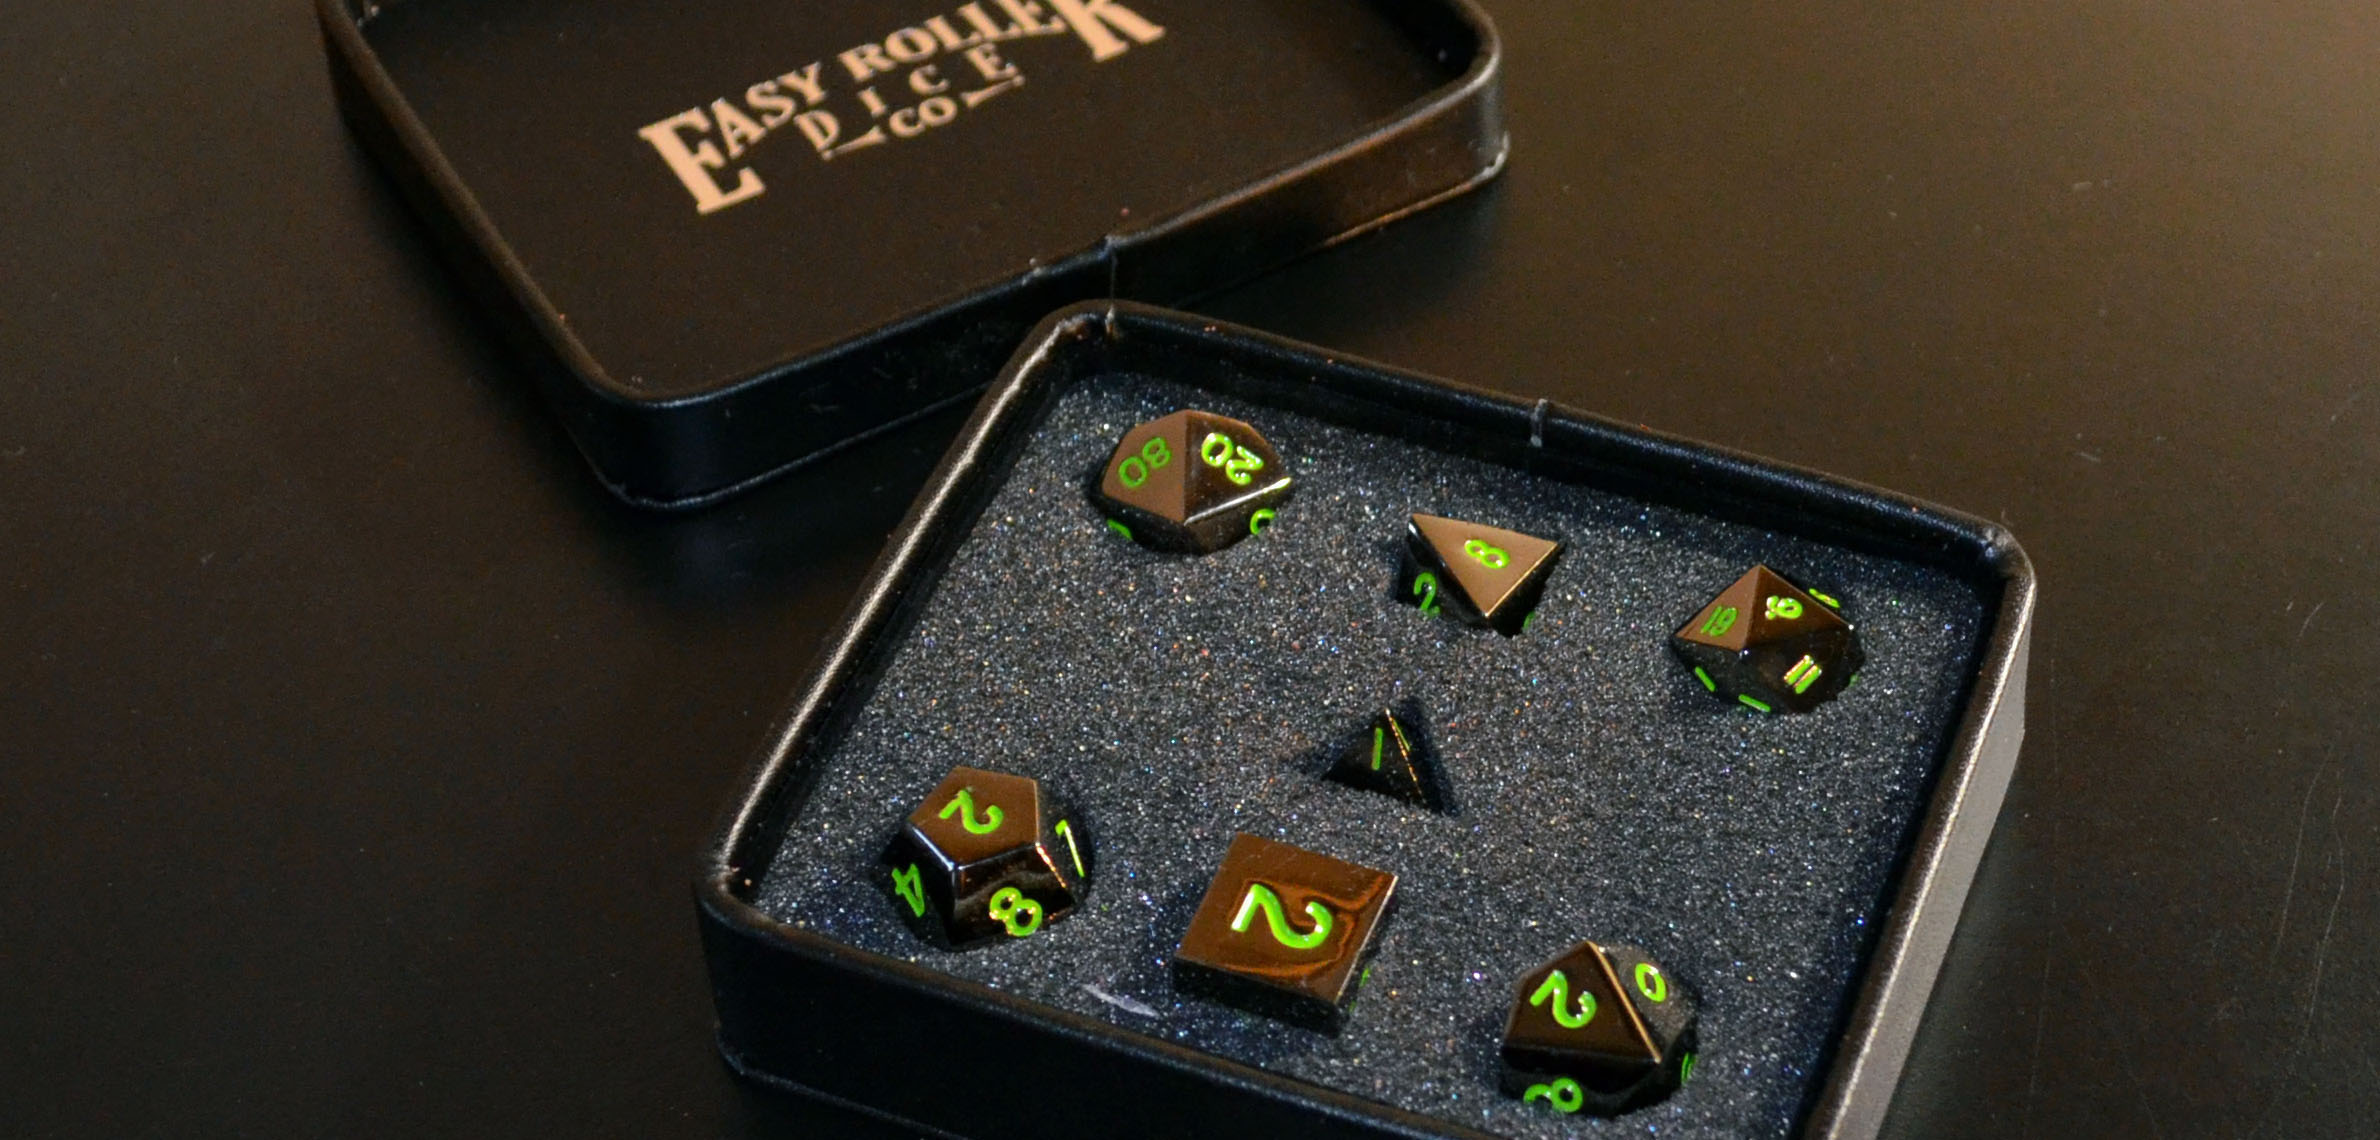 Review: Easy Roller Dice Co. Gaming Dice, Four Different Varieties